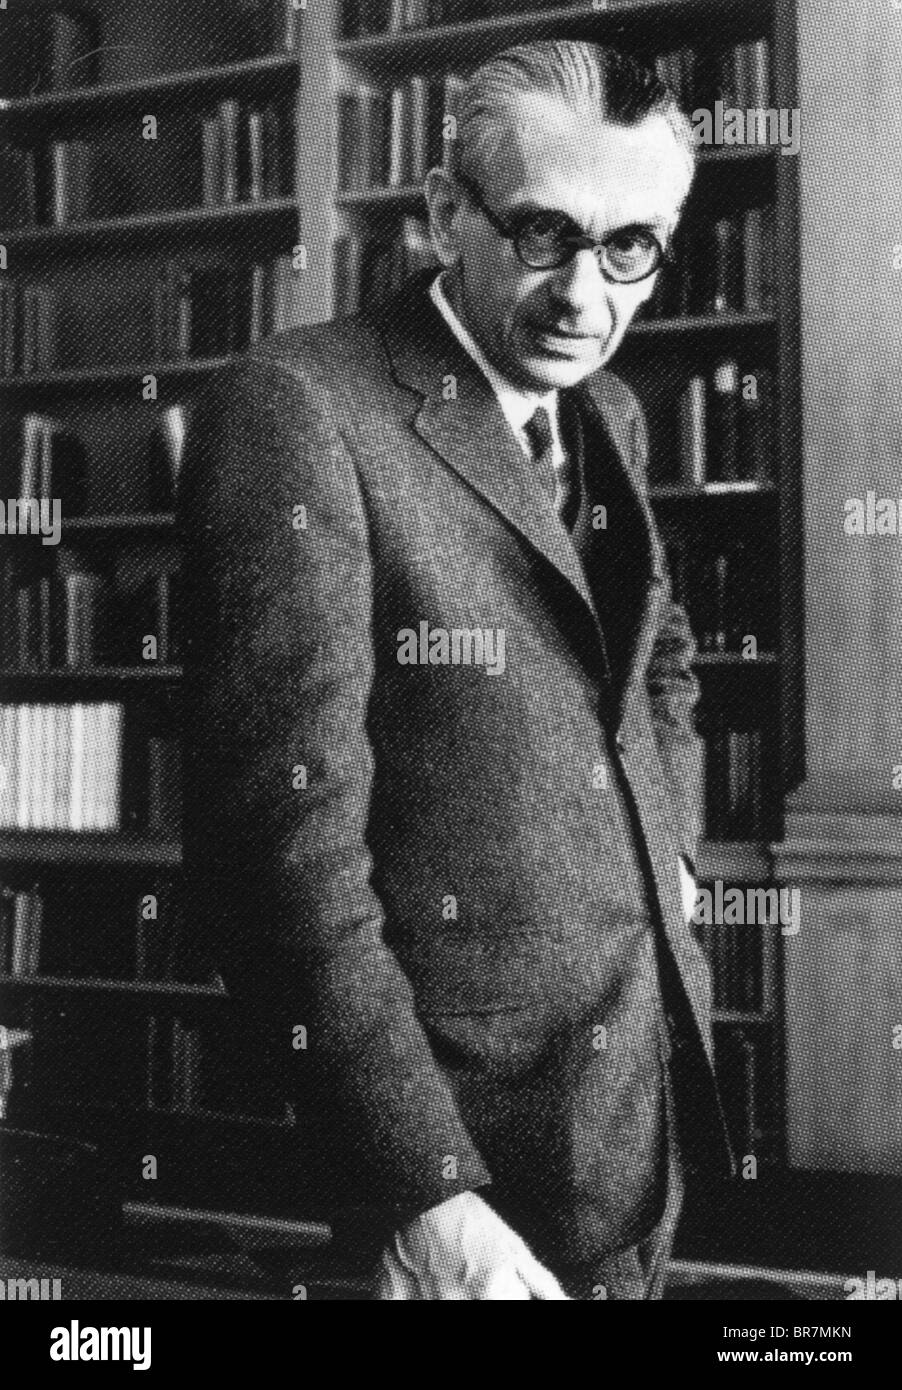 KURT GODEL (1906-1978) Austrian logician, mathematician and philosopher - Stock Image